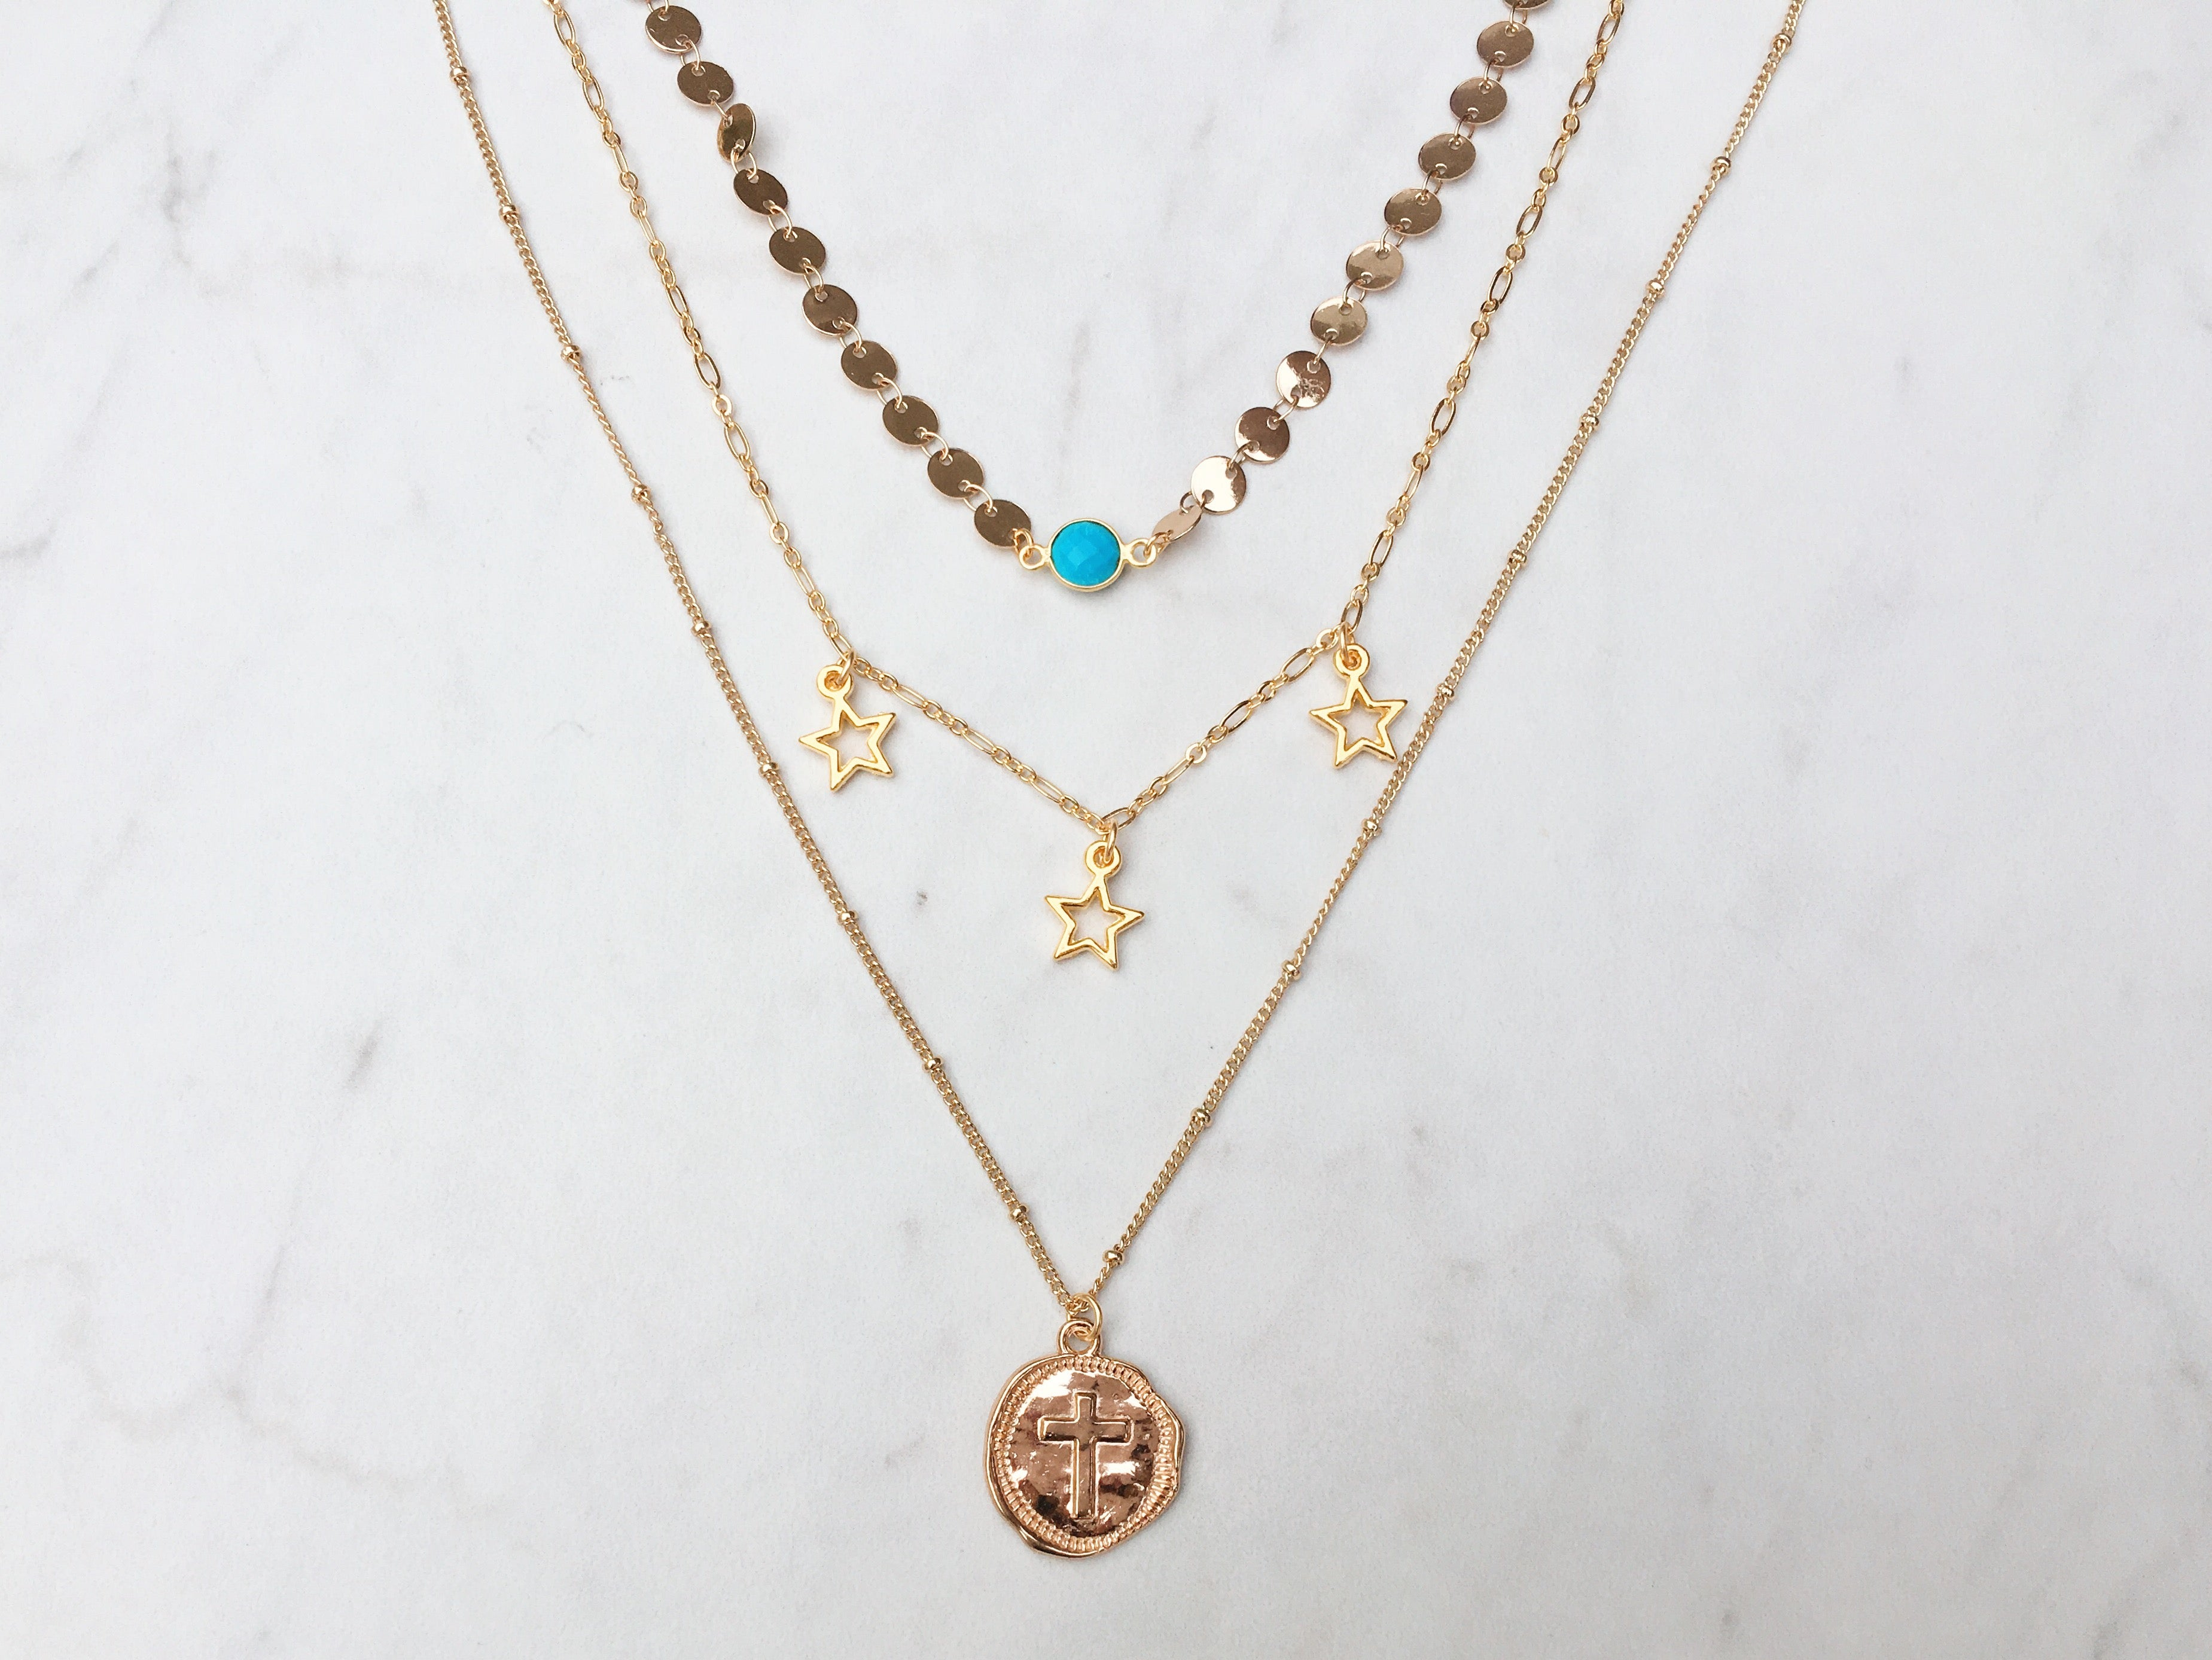 McCall Mitchell x Blissfully Liss Exclusive Necklace Set